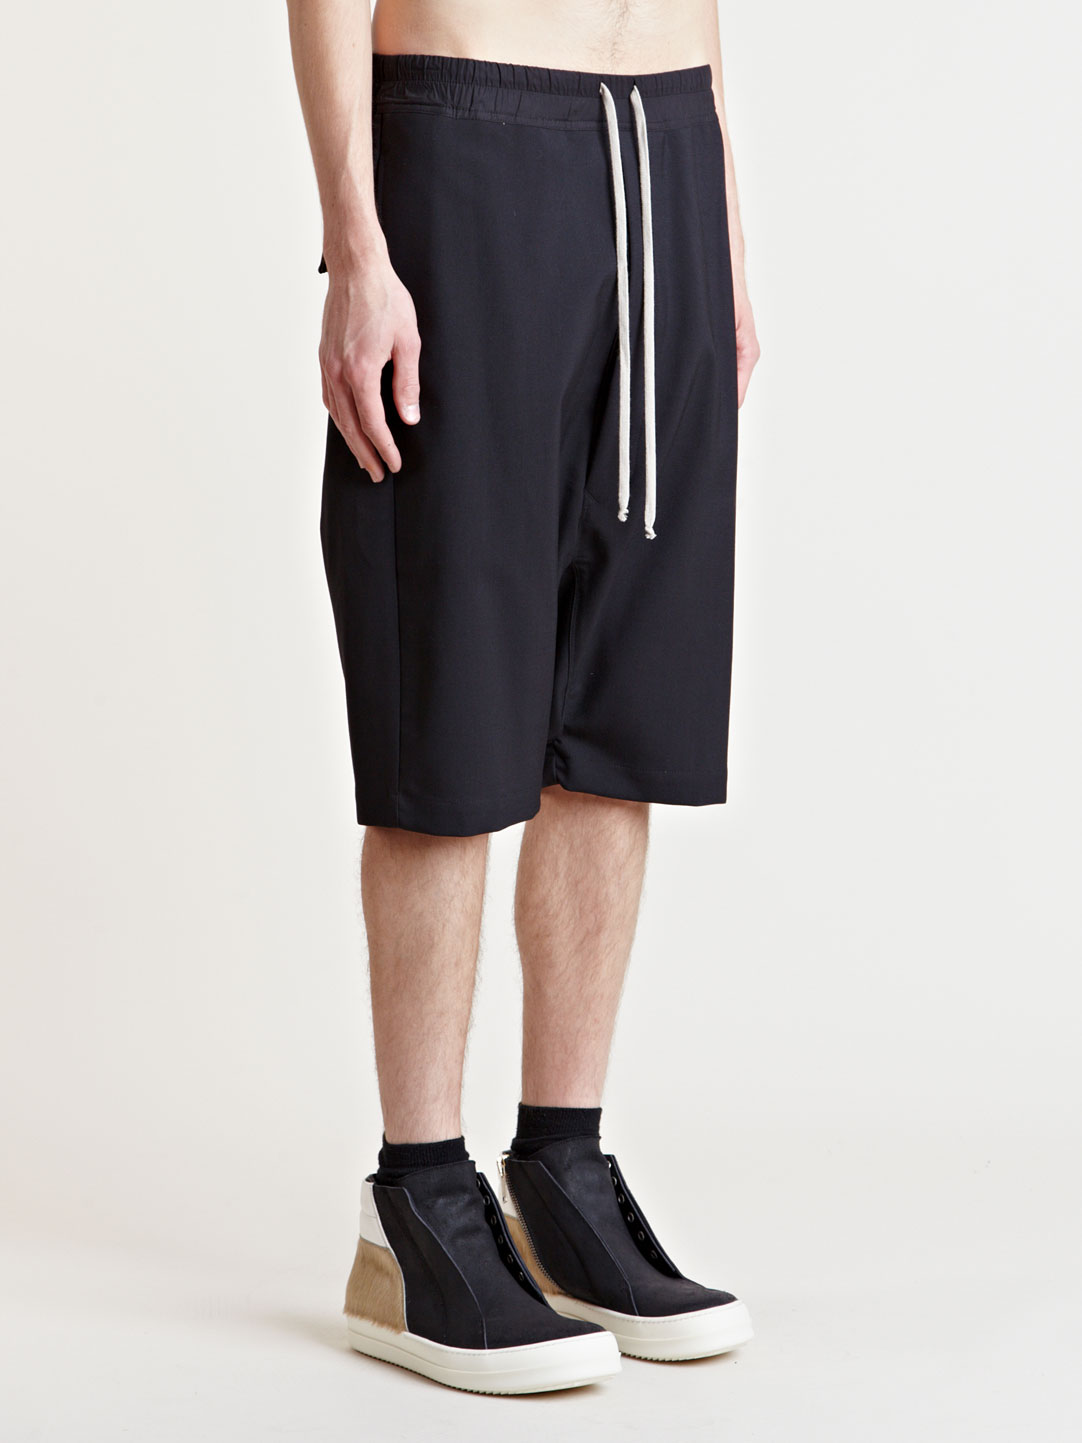 Rick Owens Men's Structured Pod Shorts | LN-CC